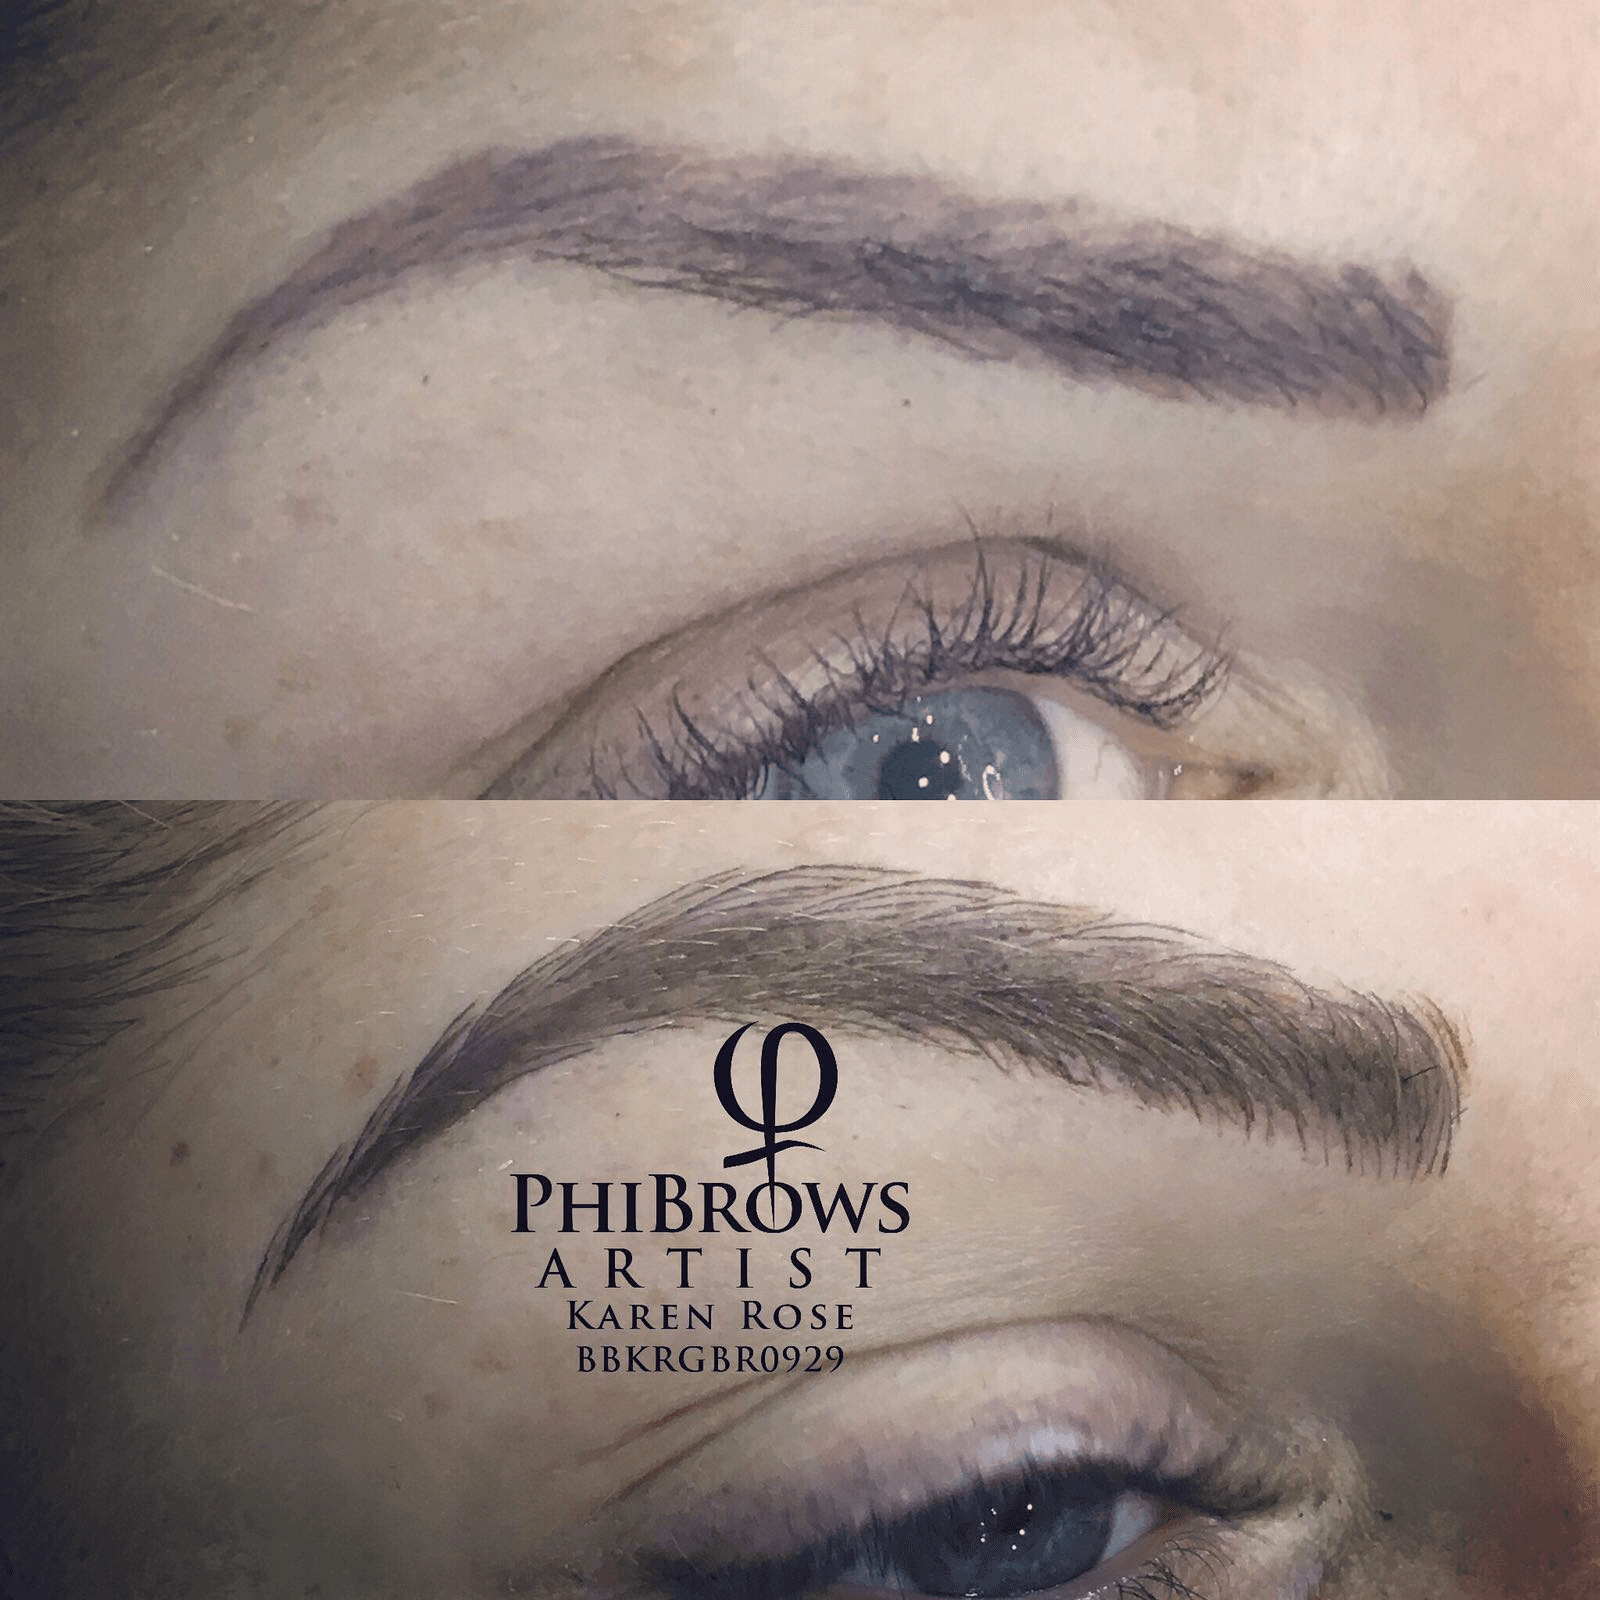 Phibrows treatment